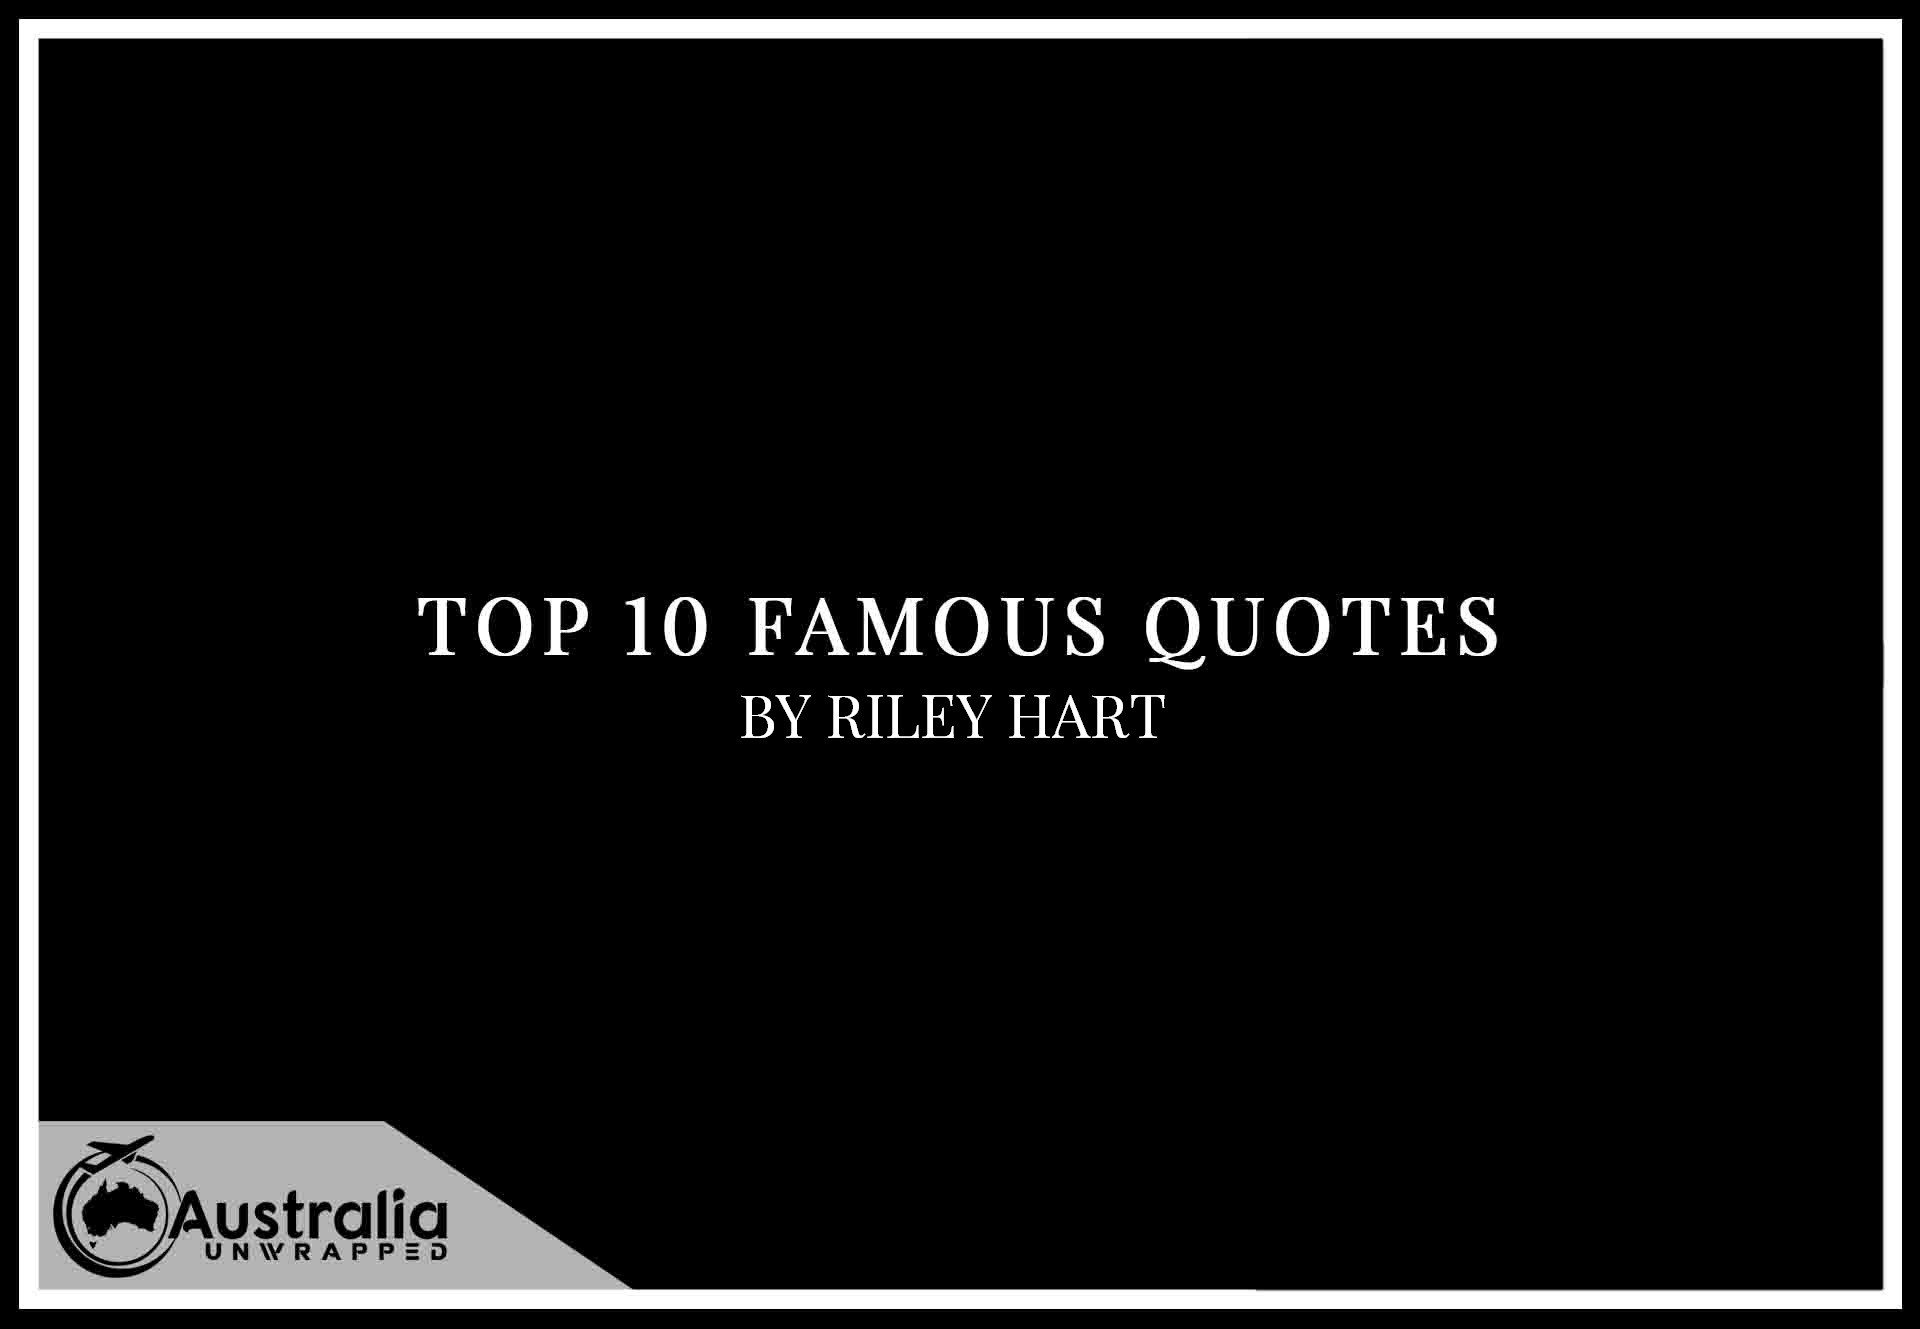 Top 10 Famous Quotes by Author Riley Hart